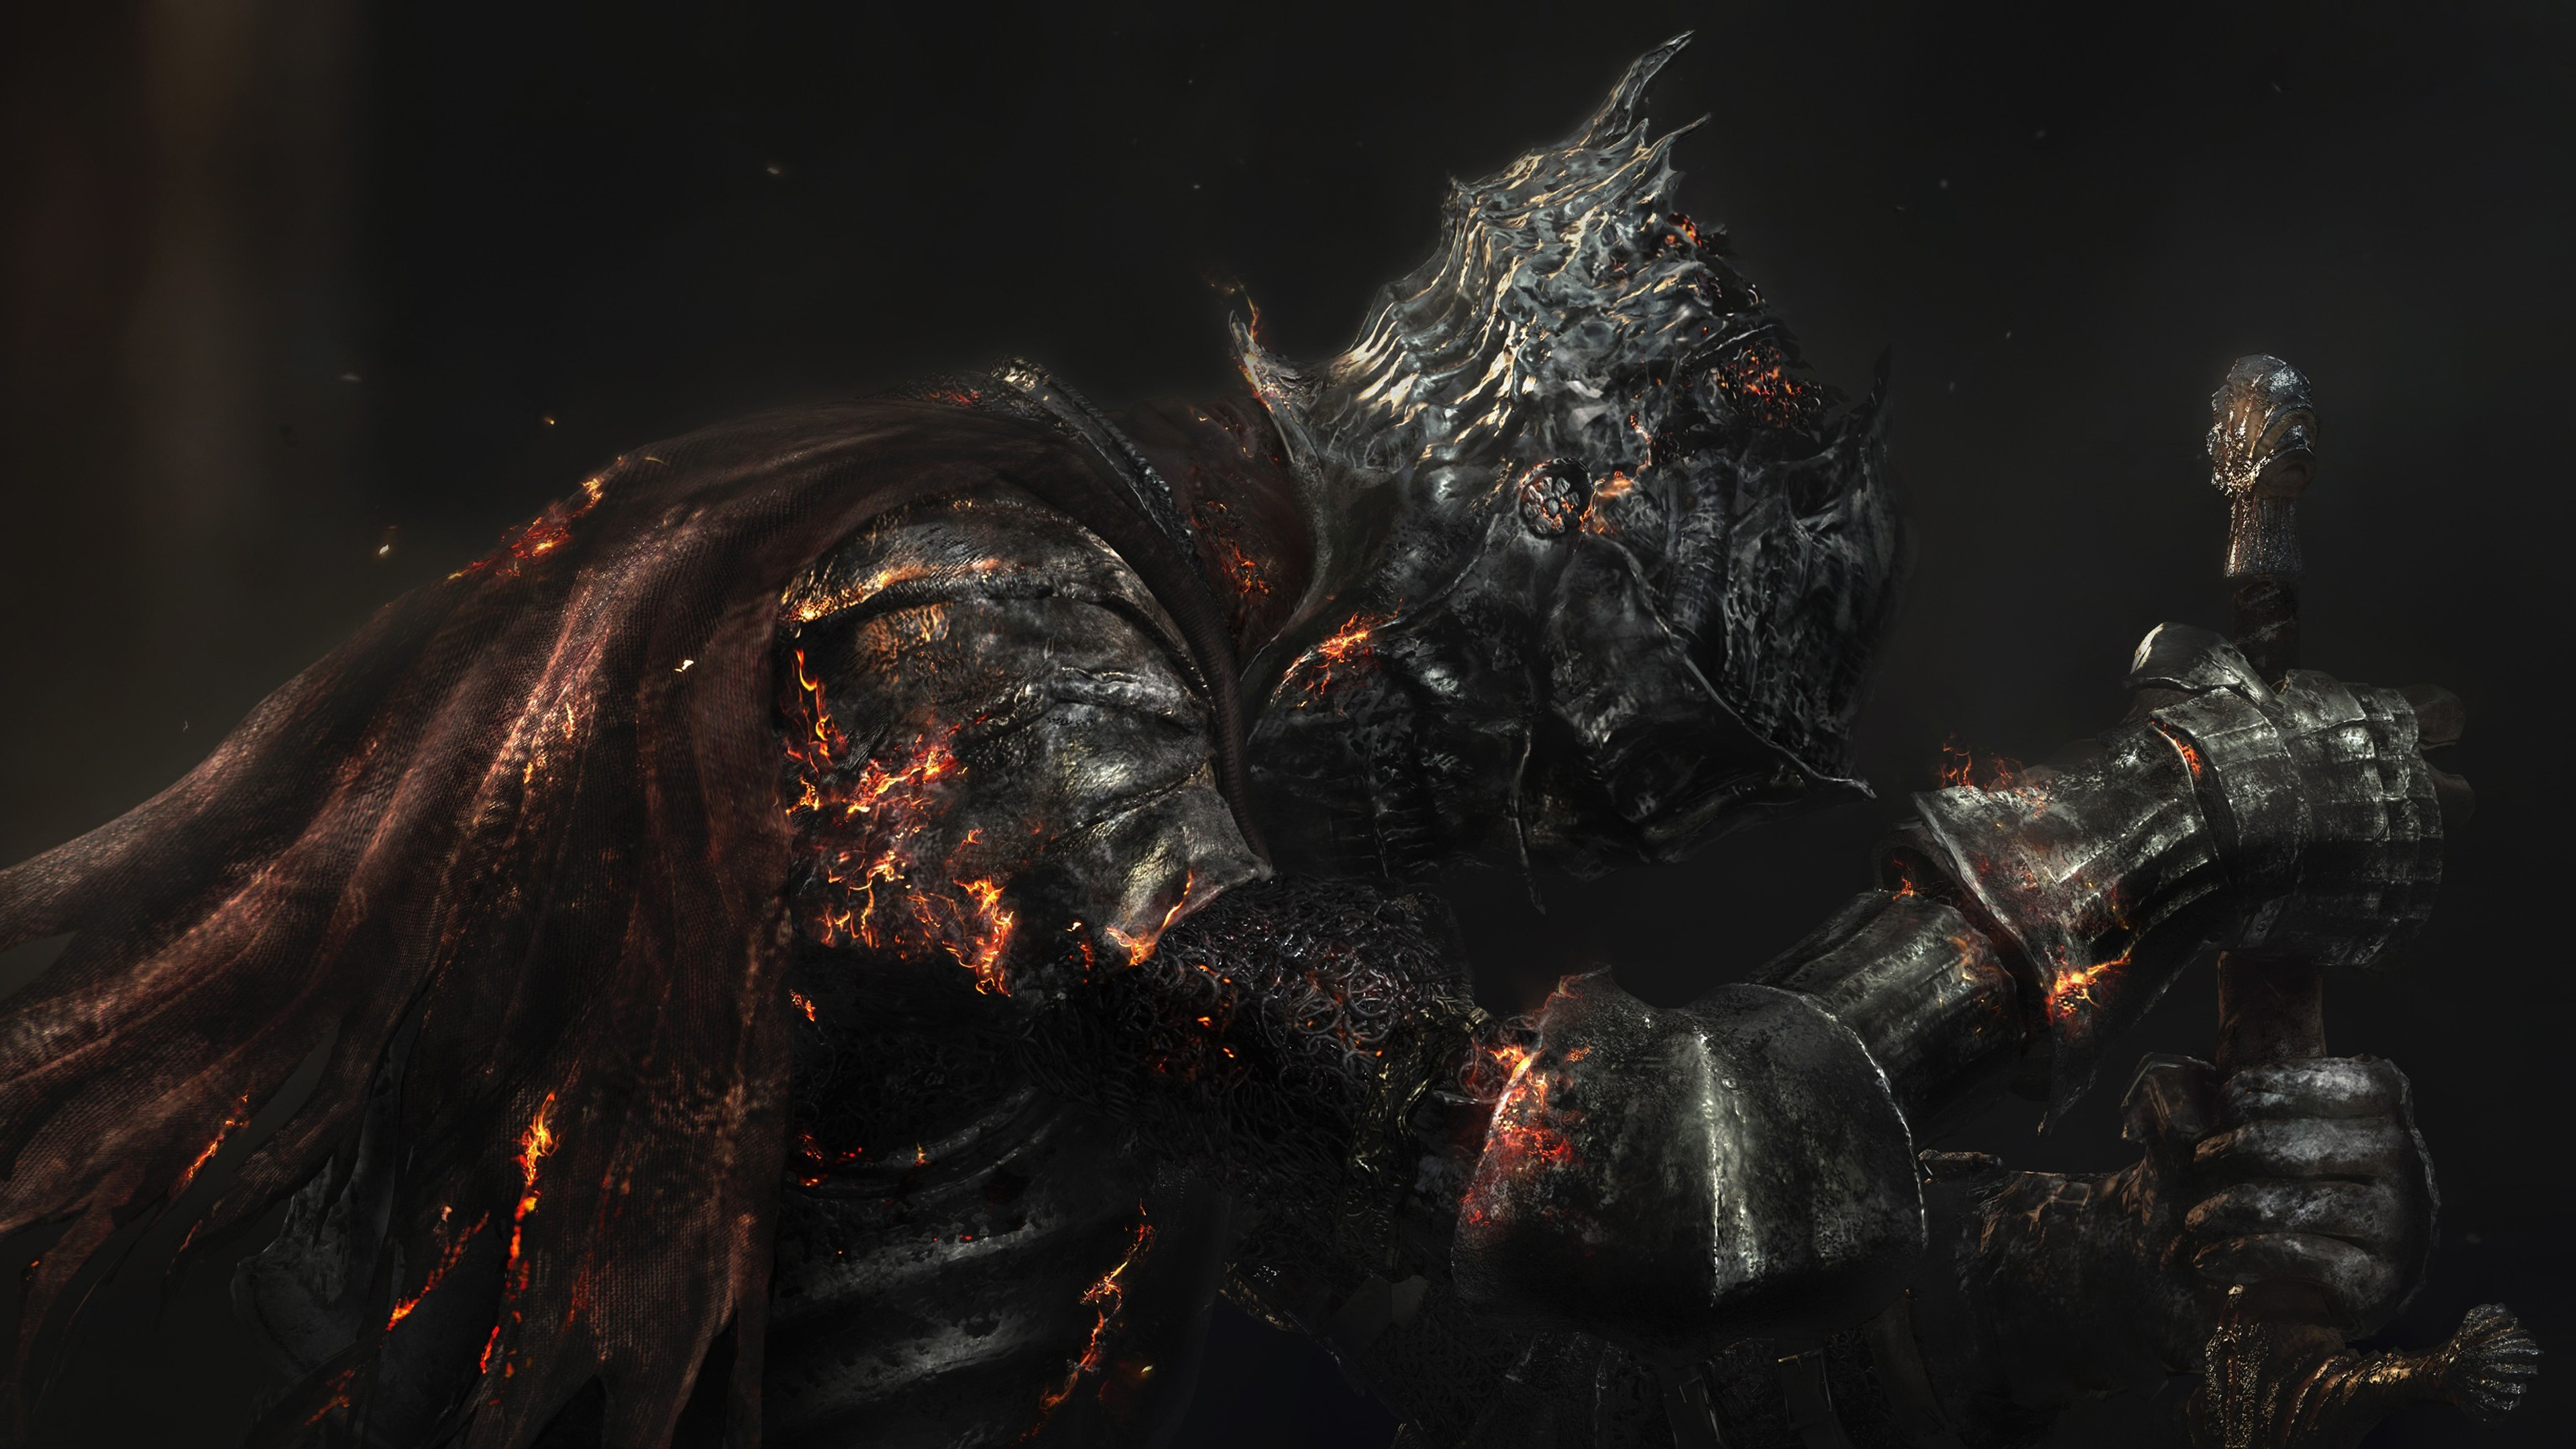 dark_souls_III-warrior-4k-wallpaper-3840x2160